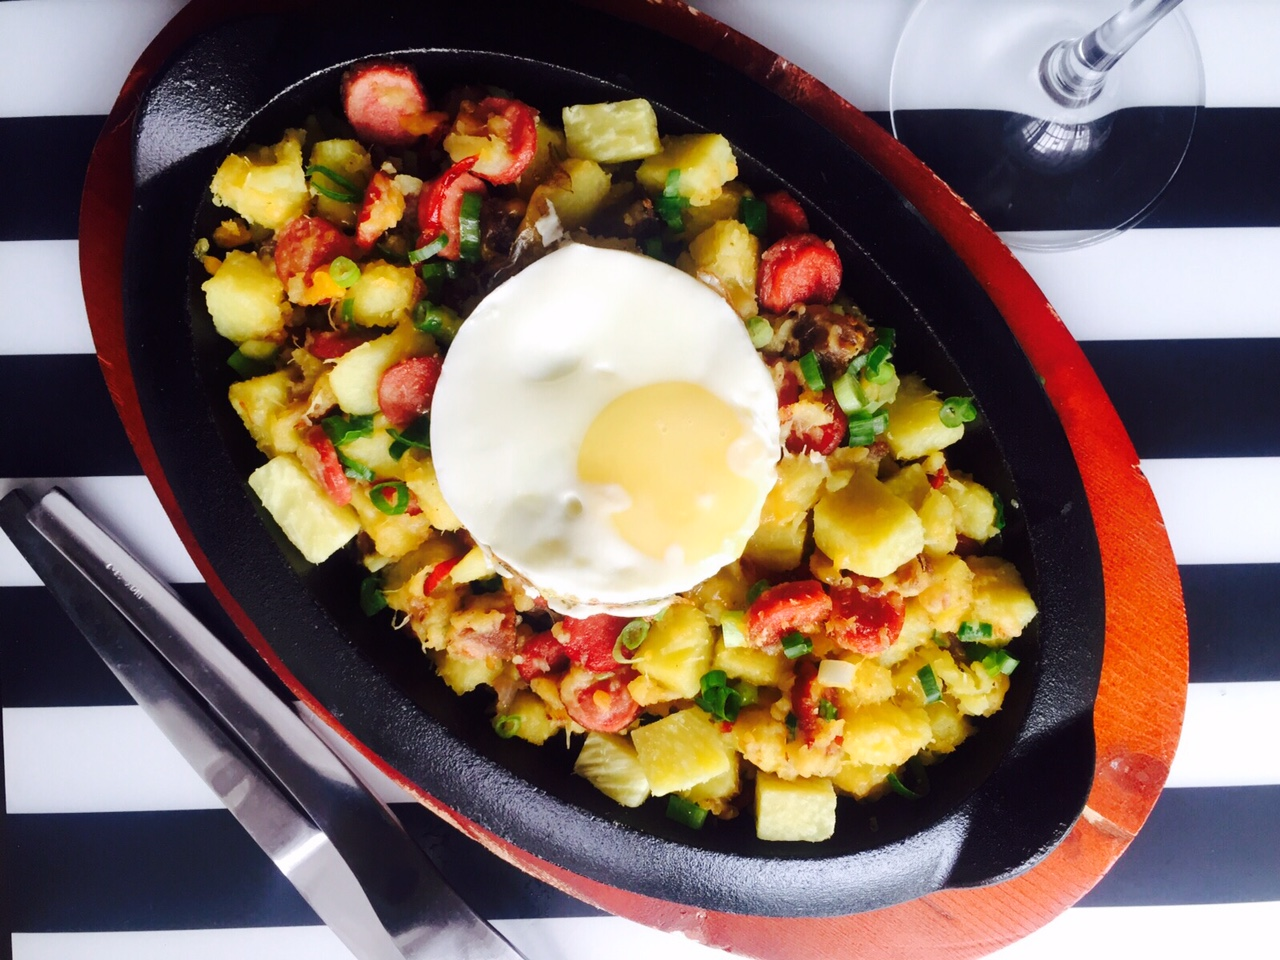 Weekend Recipe with Chef Renee: Meaty, Cheesy, Yam Breakfast Skillet